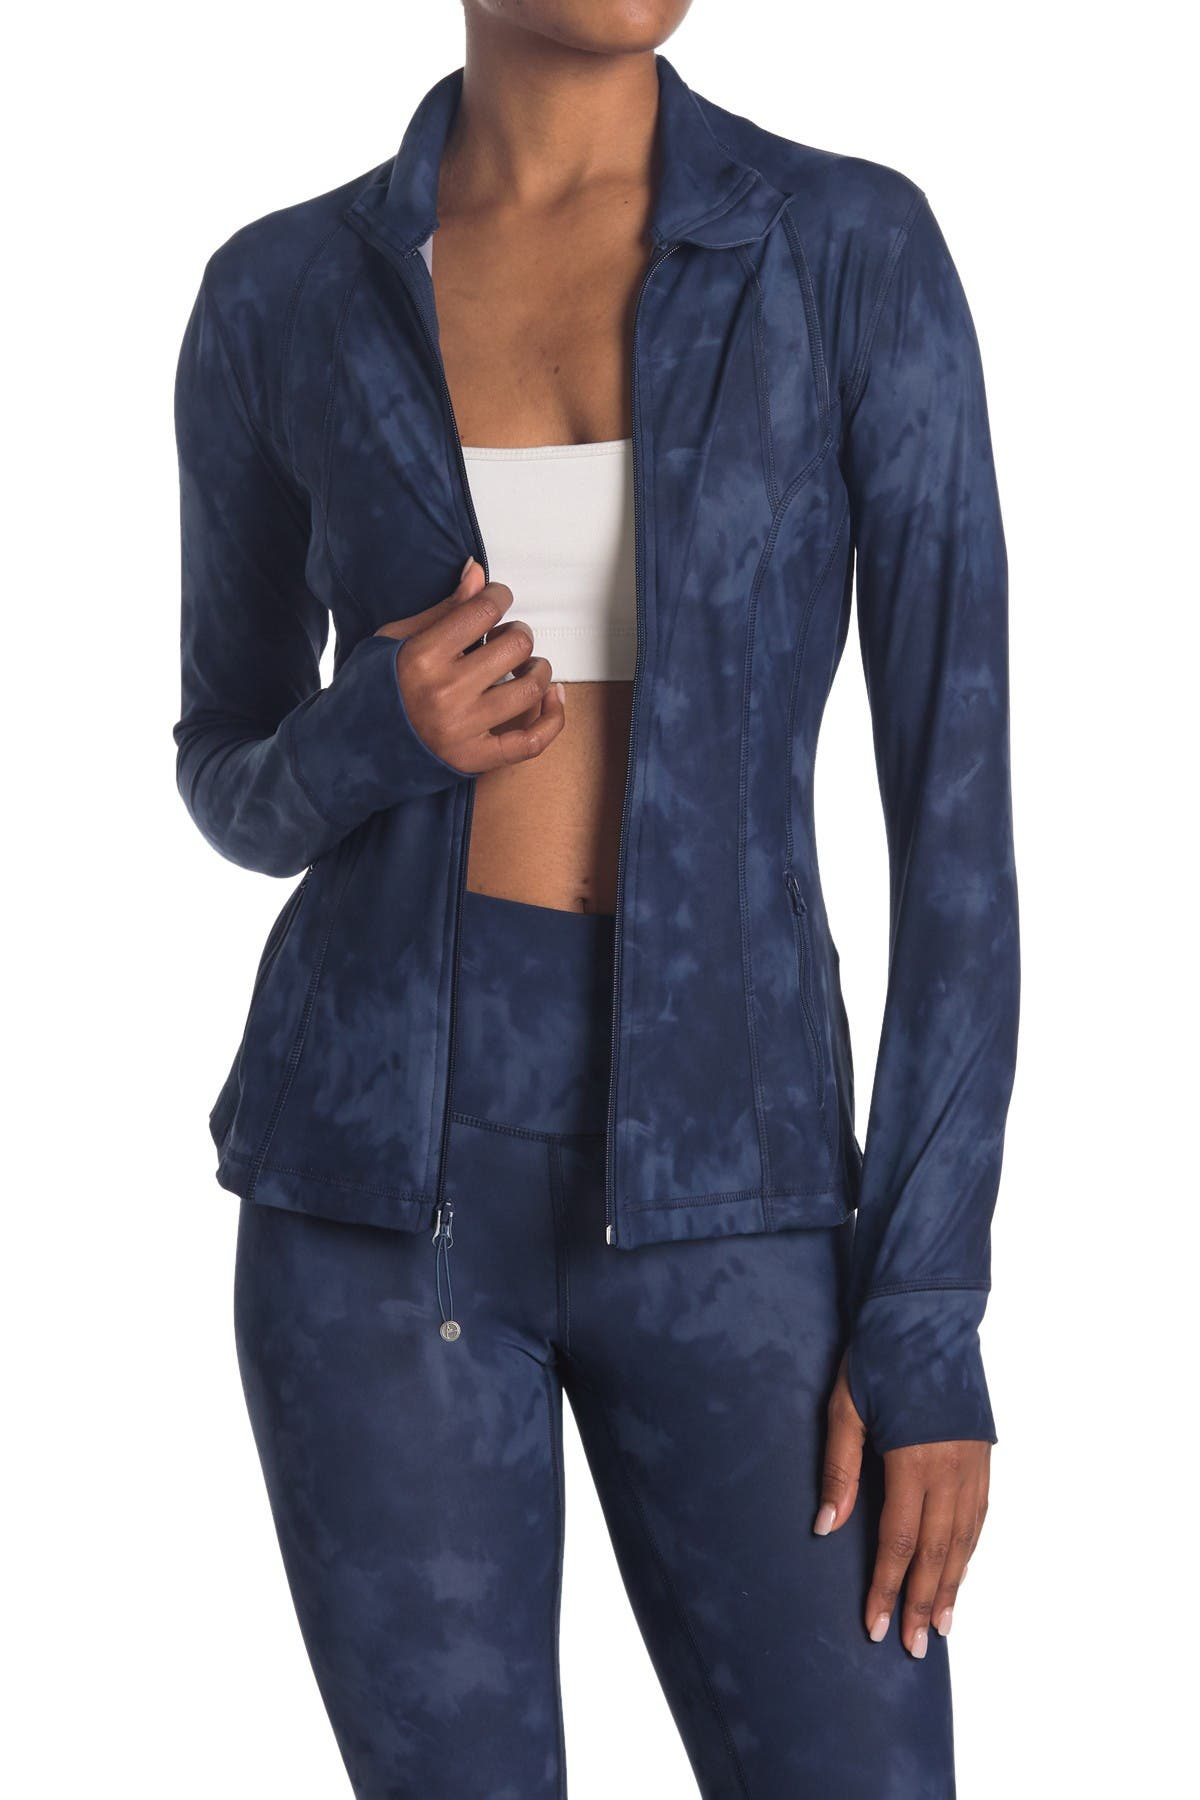 Image of 90 Degree By Reflex Nude Tech Printed Full Zip Jacket